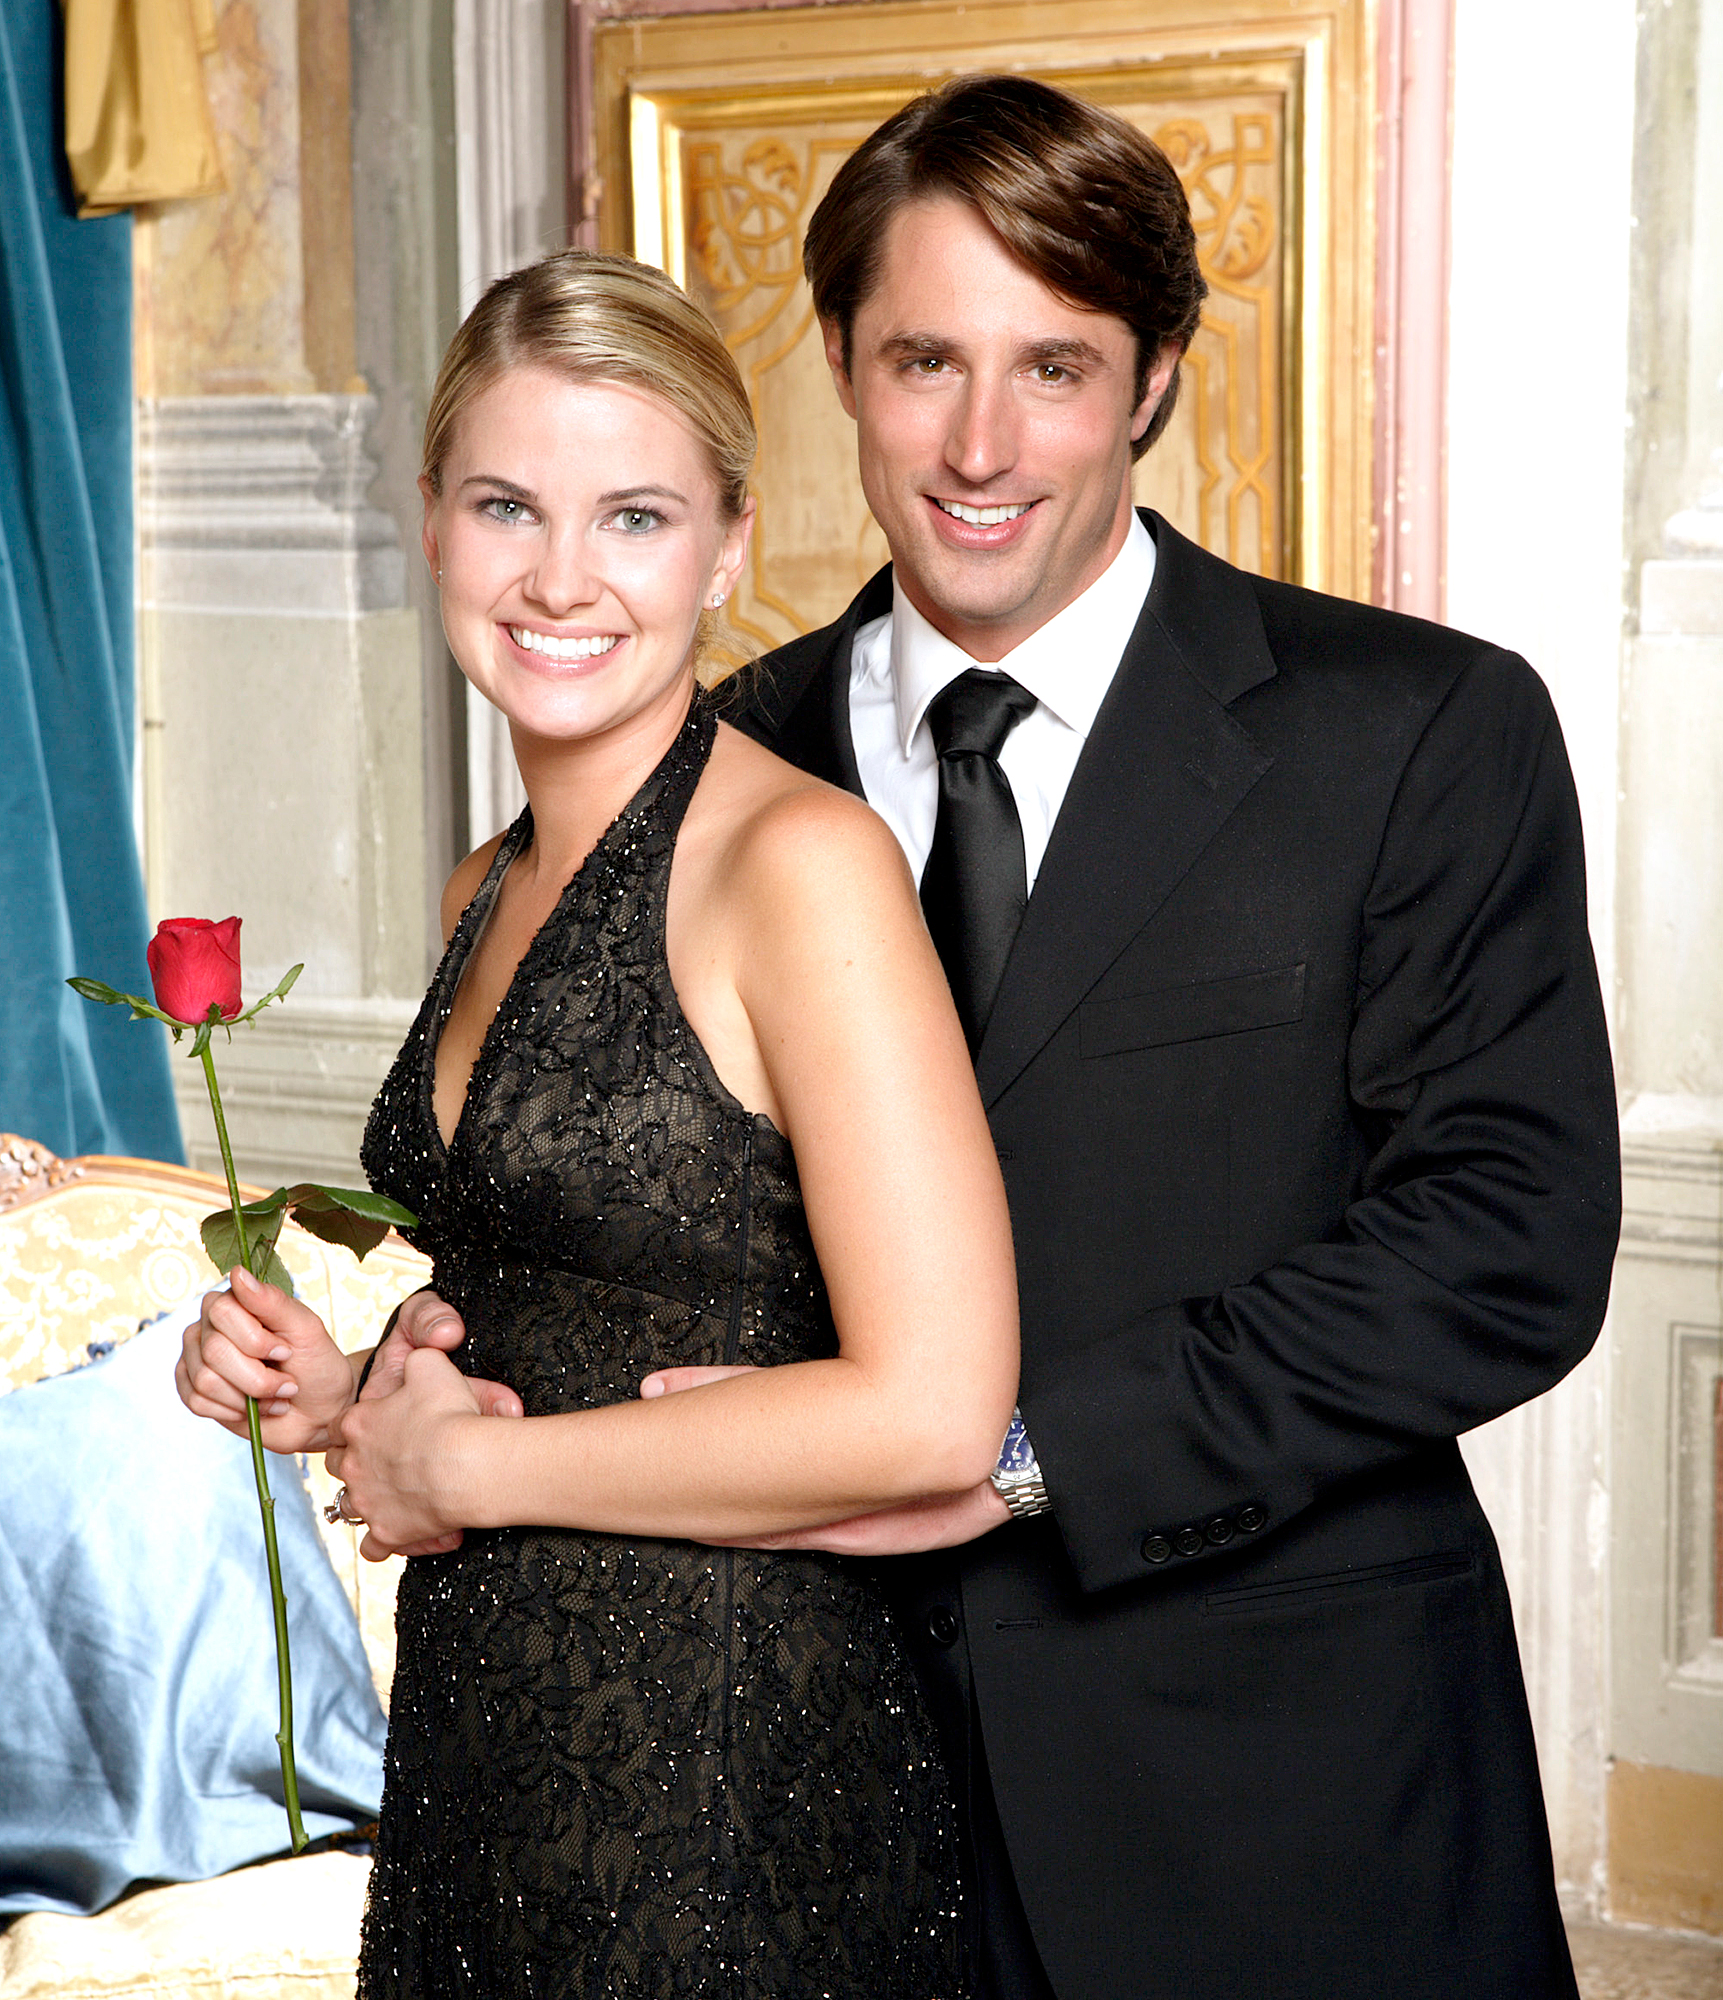 Prince-Lorenzo-Borghese-Jennifer-Wilson - Lorenzo did not get engaged to Jennifer Wilson or Sadie Murray during season 9, but dated both of the women post-show. After the Italian-American businessman and Jennifer split in January 2007, Lorenzo had a brief fling with Sadie, which ended in March 2007.